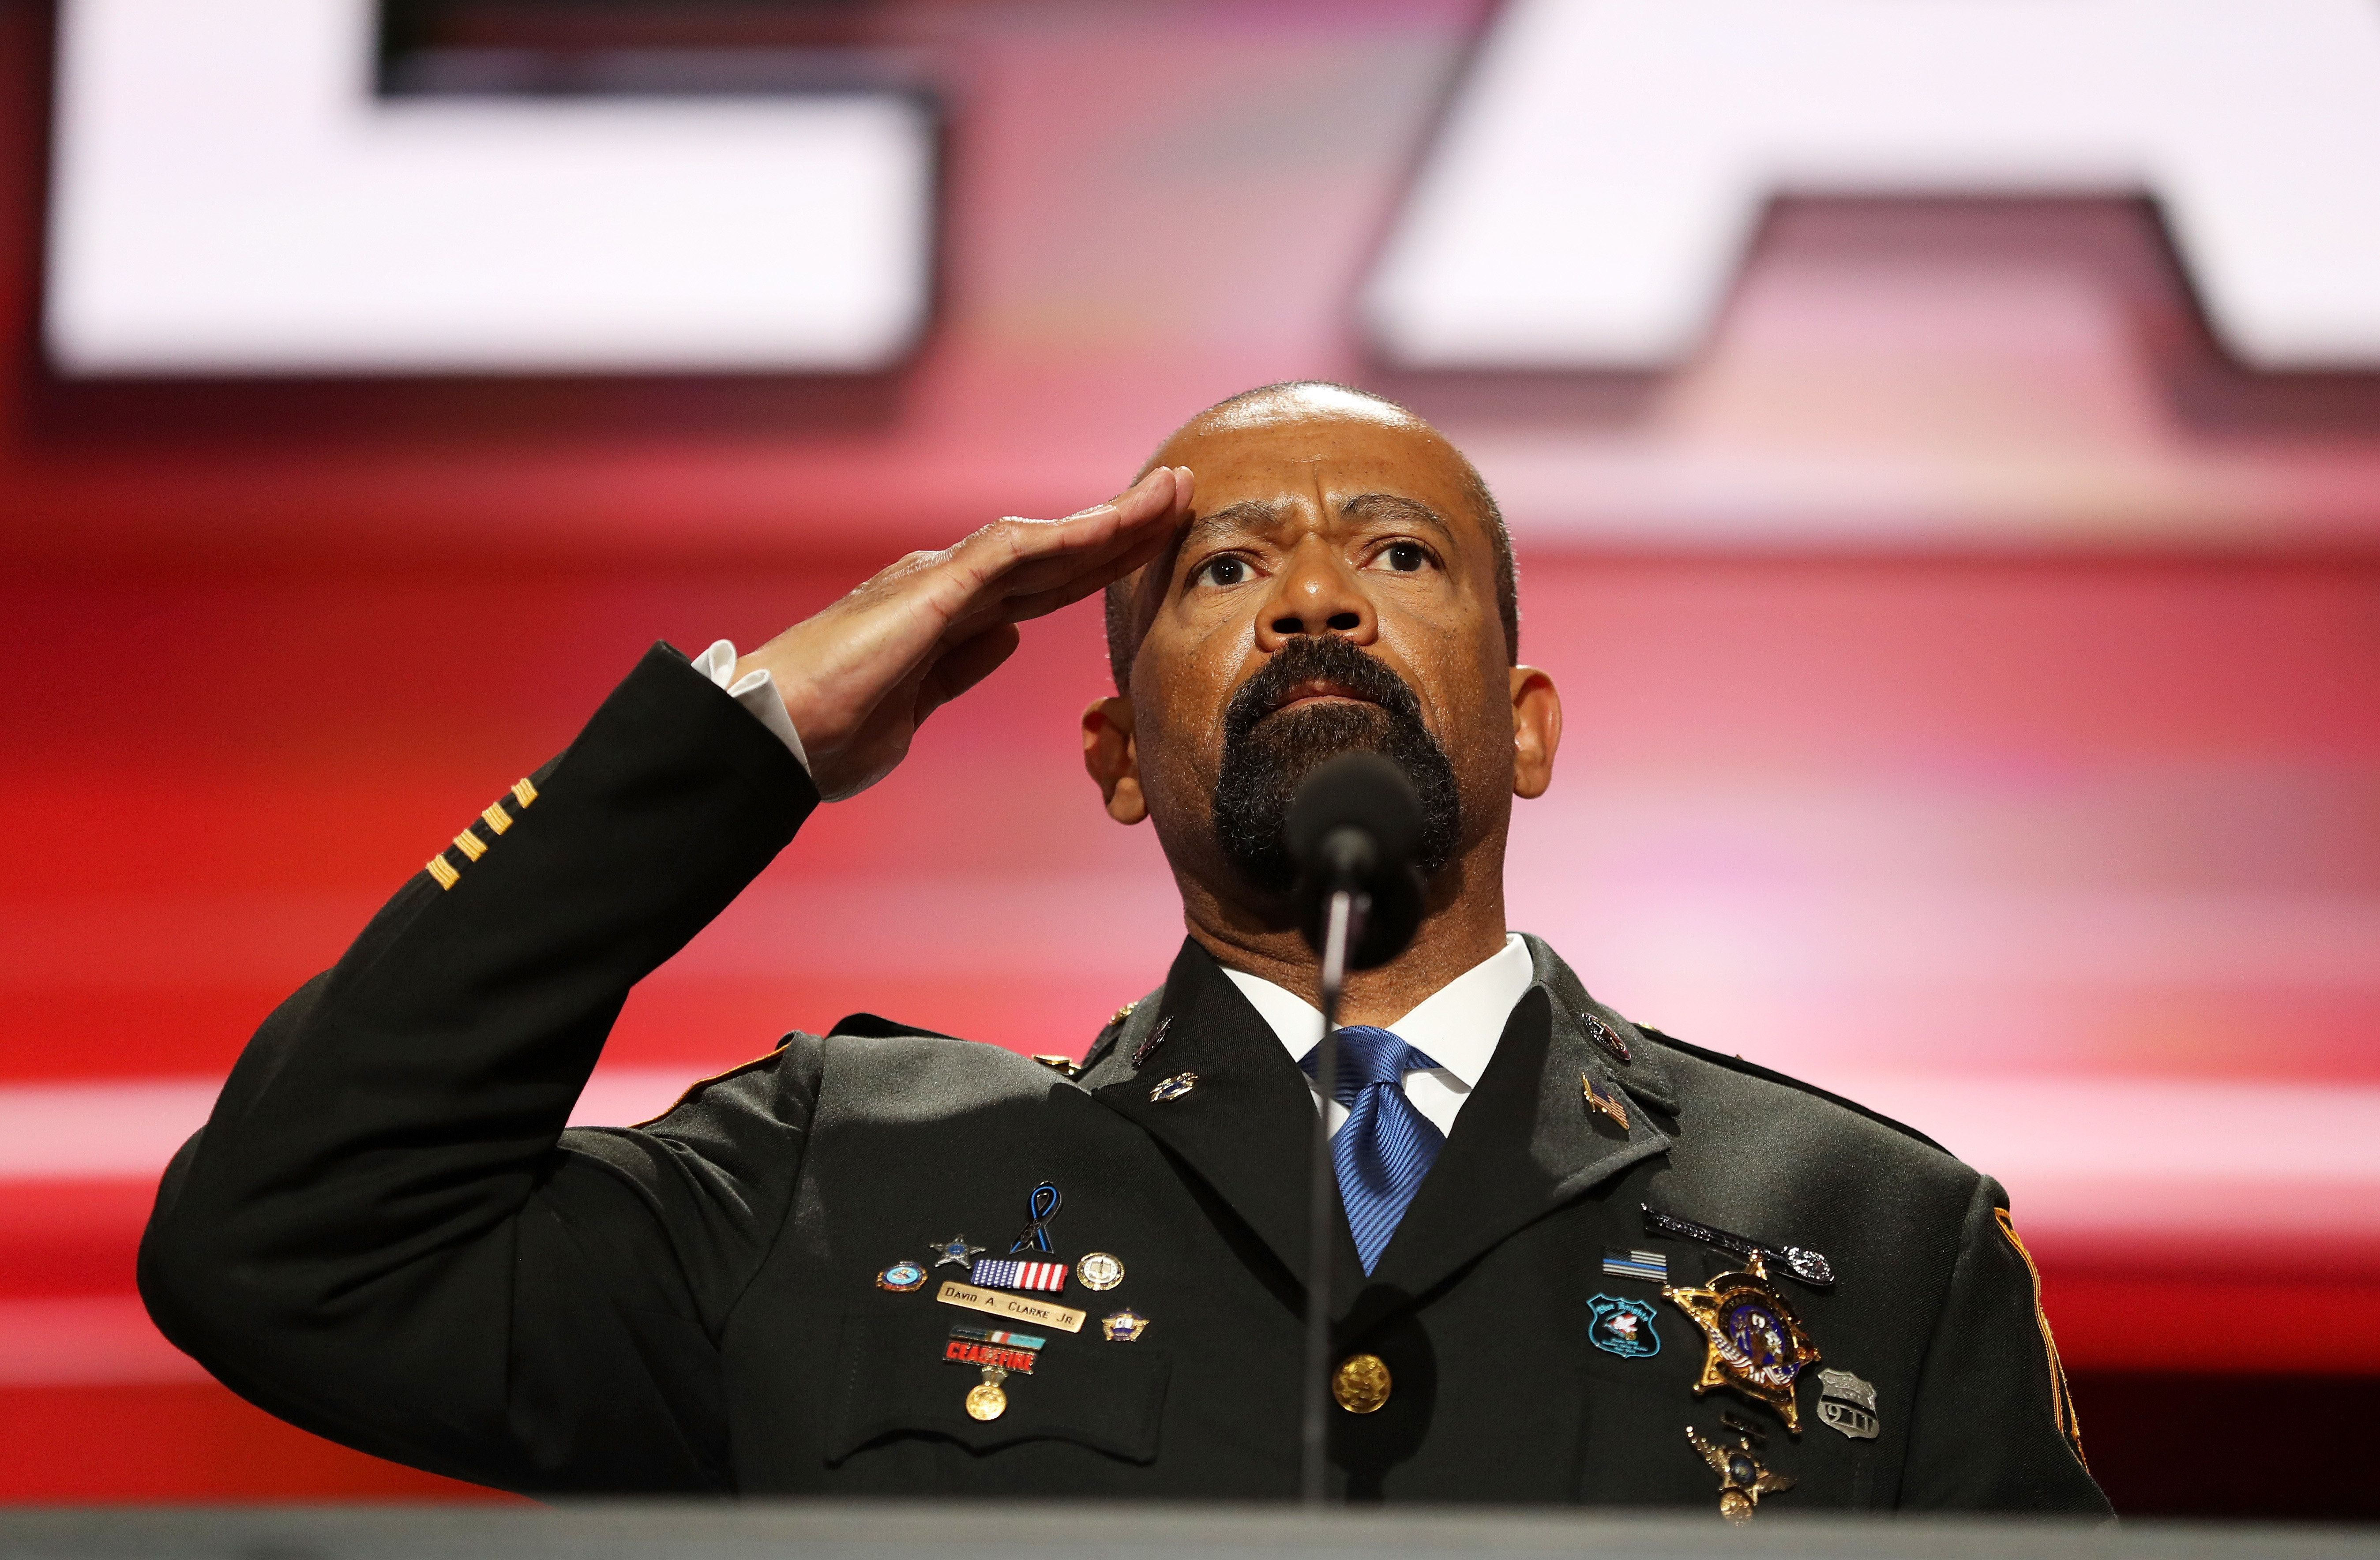 Milwaukee County Sheriff David Clarke spoke at the Republican convention in